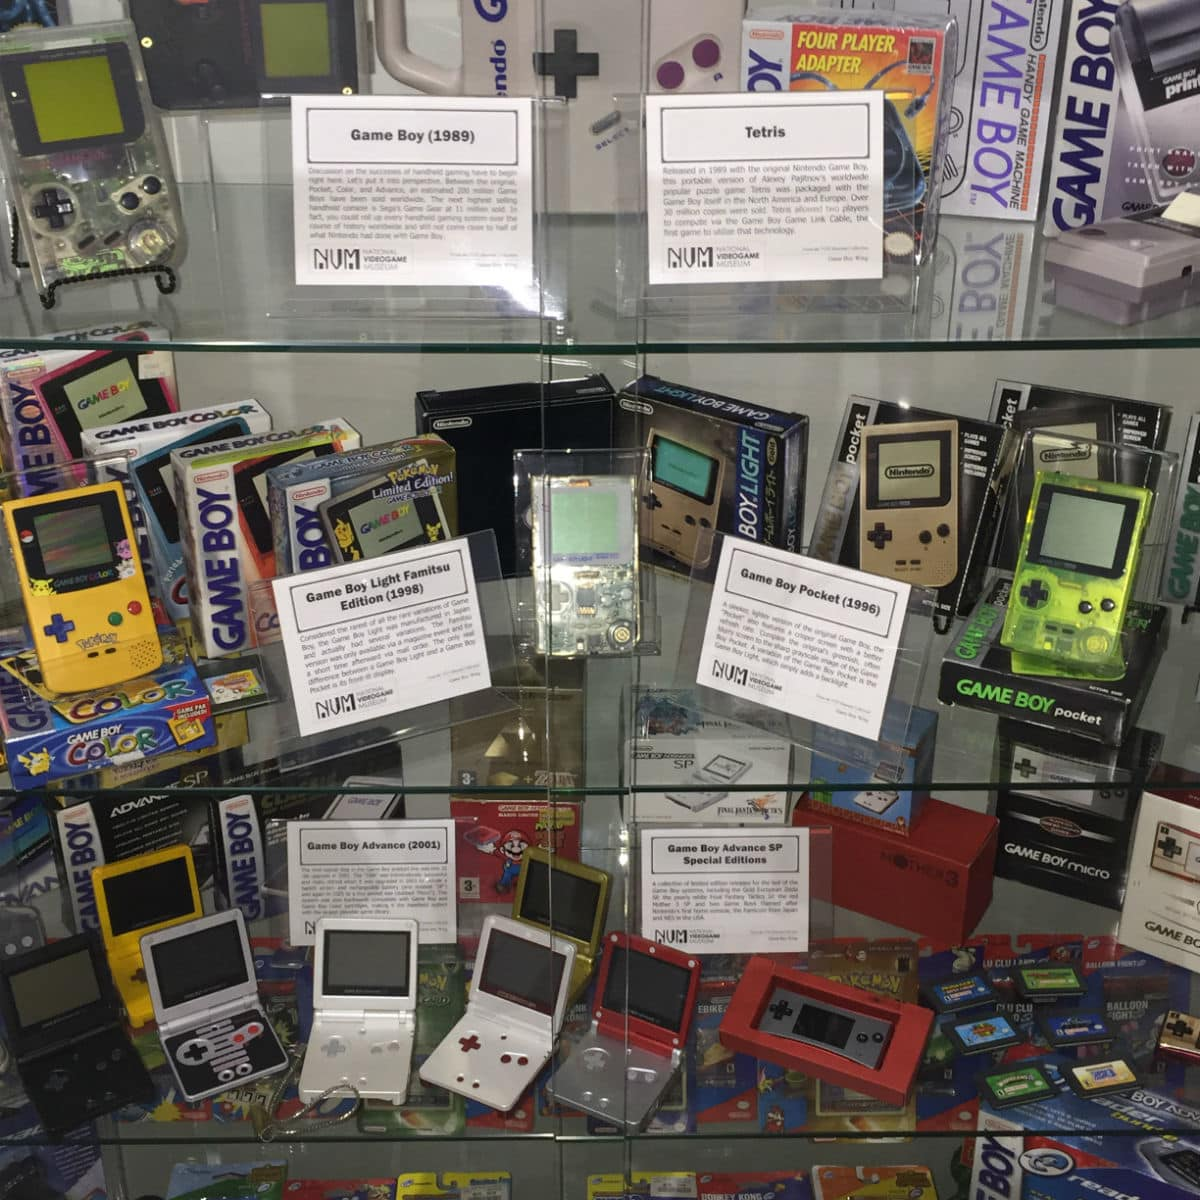 Display case at National Videogame Museum